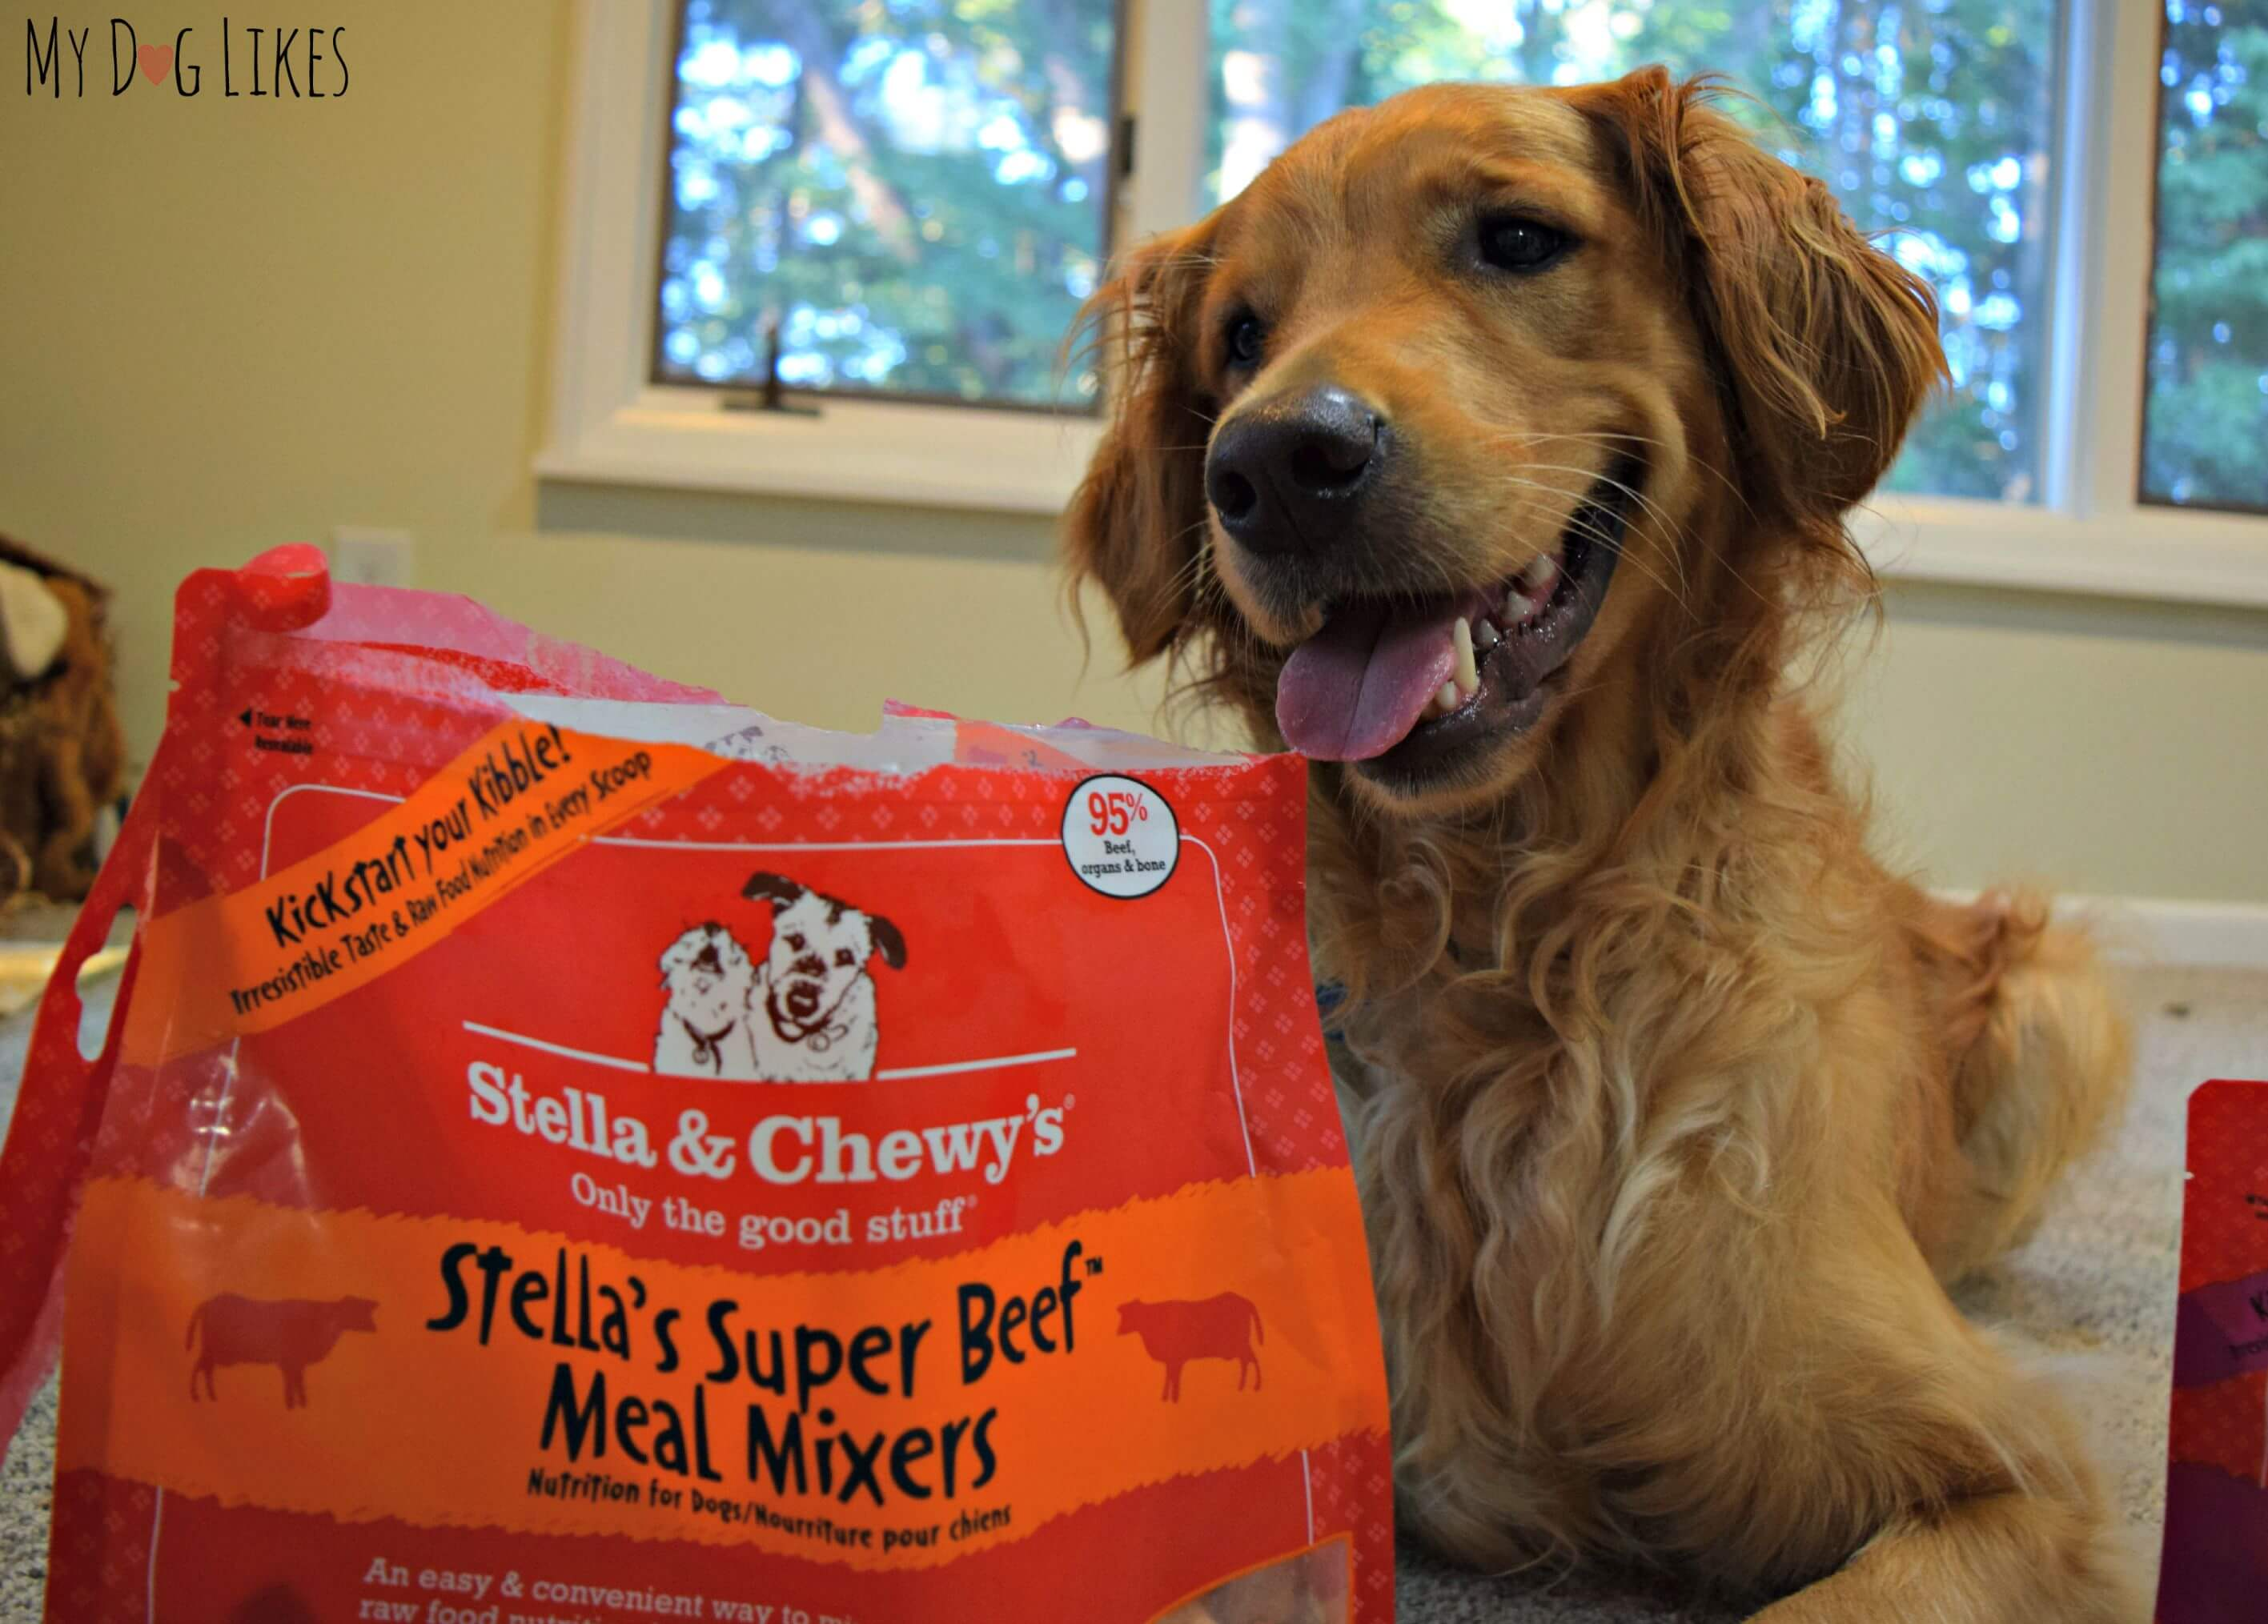 Beauteous Meal Mixers Review It Stella Stella Chewy Near Me Stella Chewy Reviews bark post Stella And Chewy